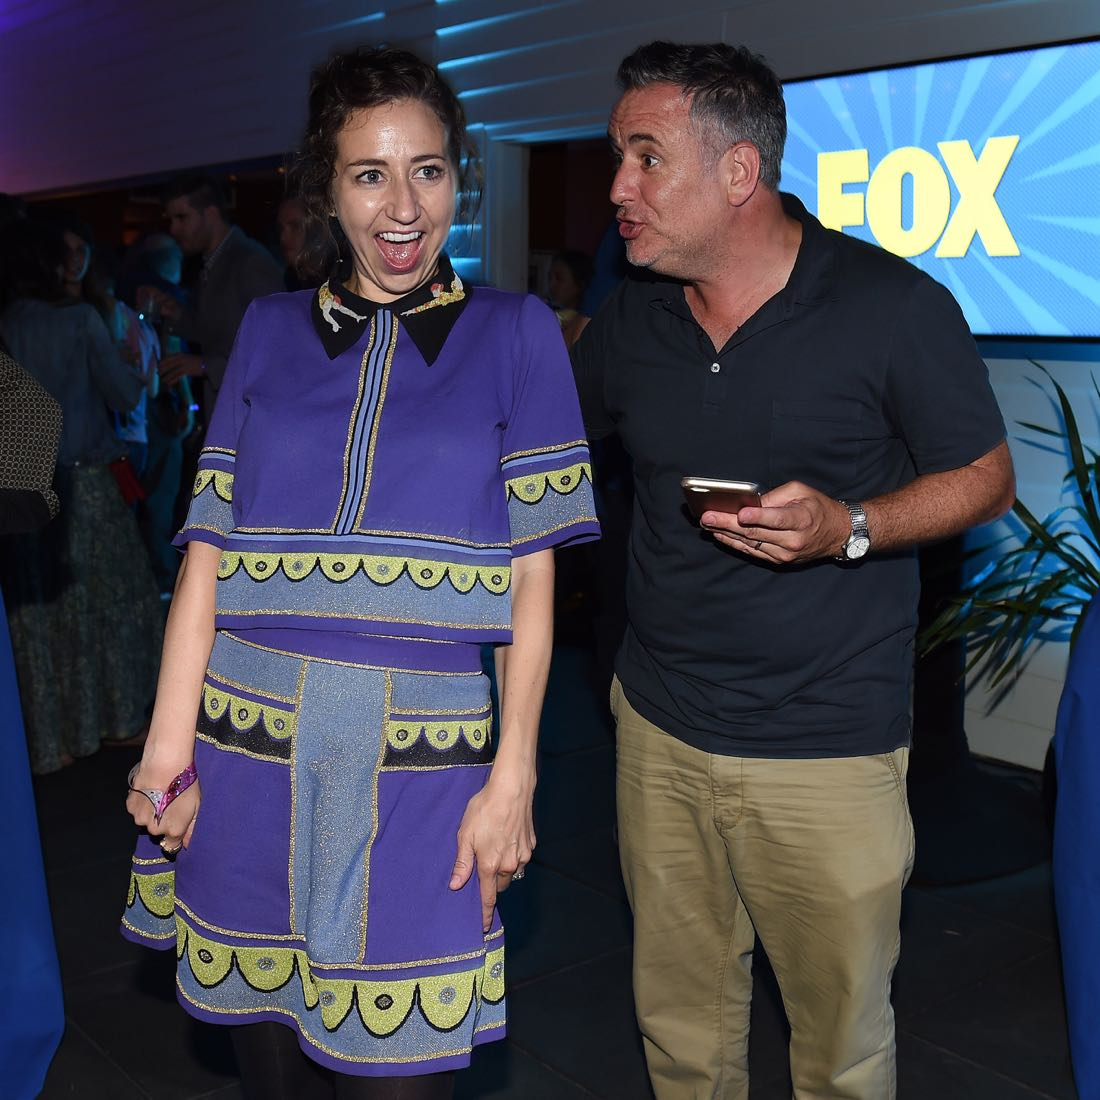 FOX FANFARE ALL-STAR COMIC CON PARTY AT SAN DIEGO COMIC-CON © 2016: Kristen Schaal and Larry Murphy attend the FOX FANFARE ALL-STAR COMIC CON PARTY AT SAN DIEGO COMIC-CON © 2016 on Friday, July 22 at the Andaz Hotel in San Diego, CA. CR: Frank Micelotta/FOX © 2016 FOX BROADCASTING